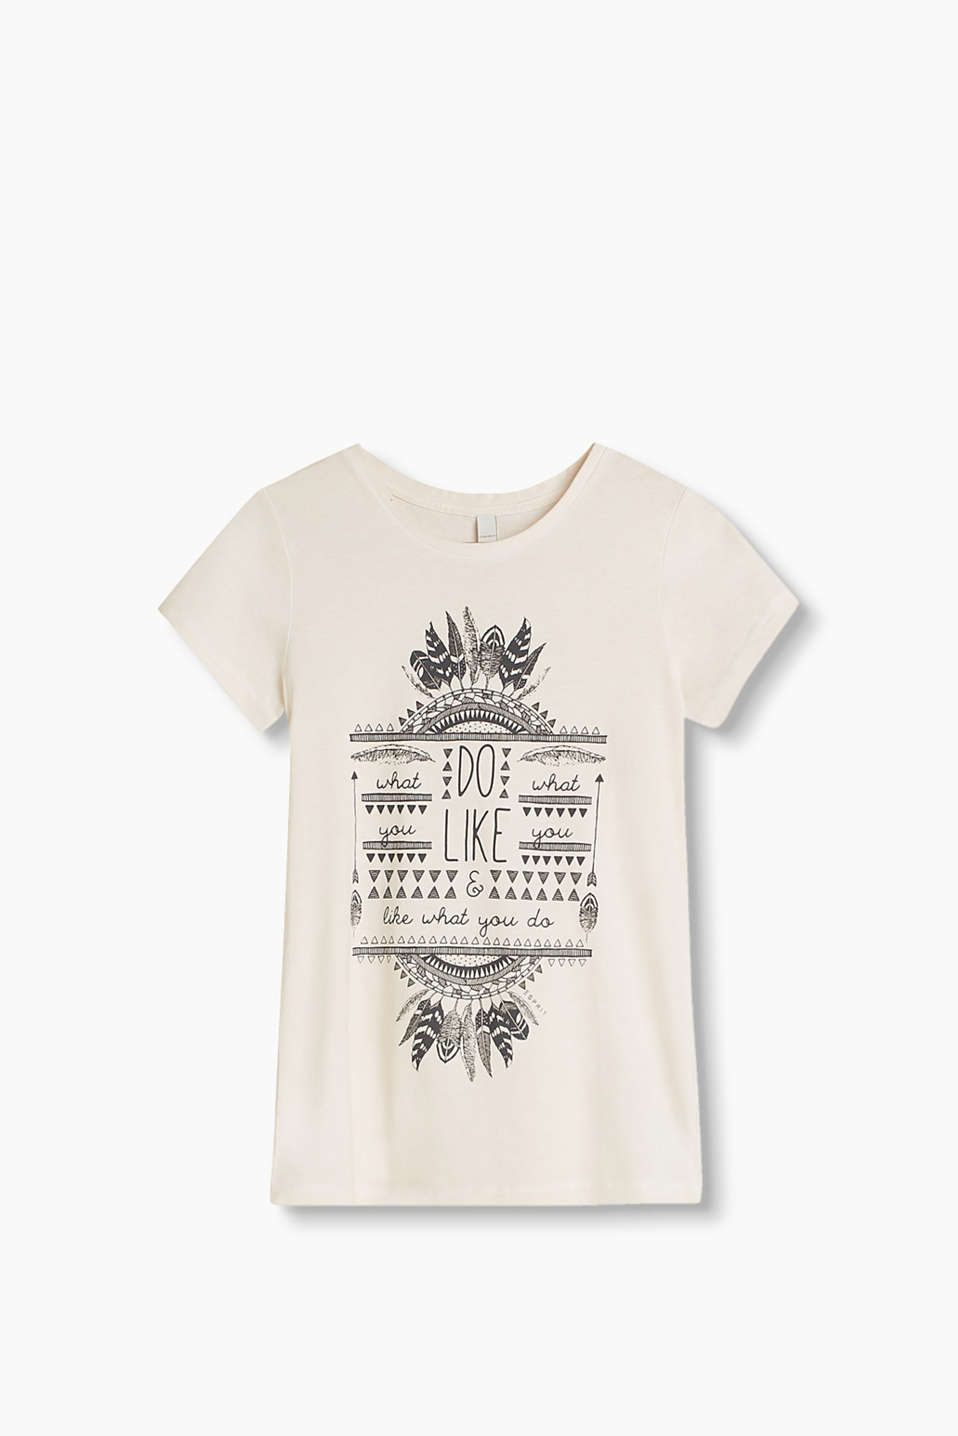 Lightweight T-shirt in a vintage look with a trendy front print, 100% cotton